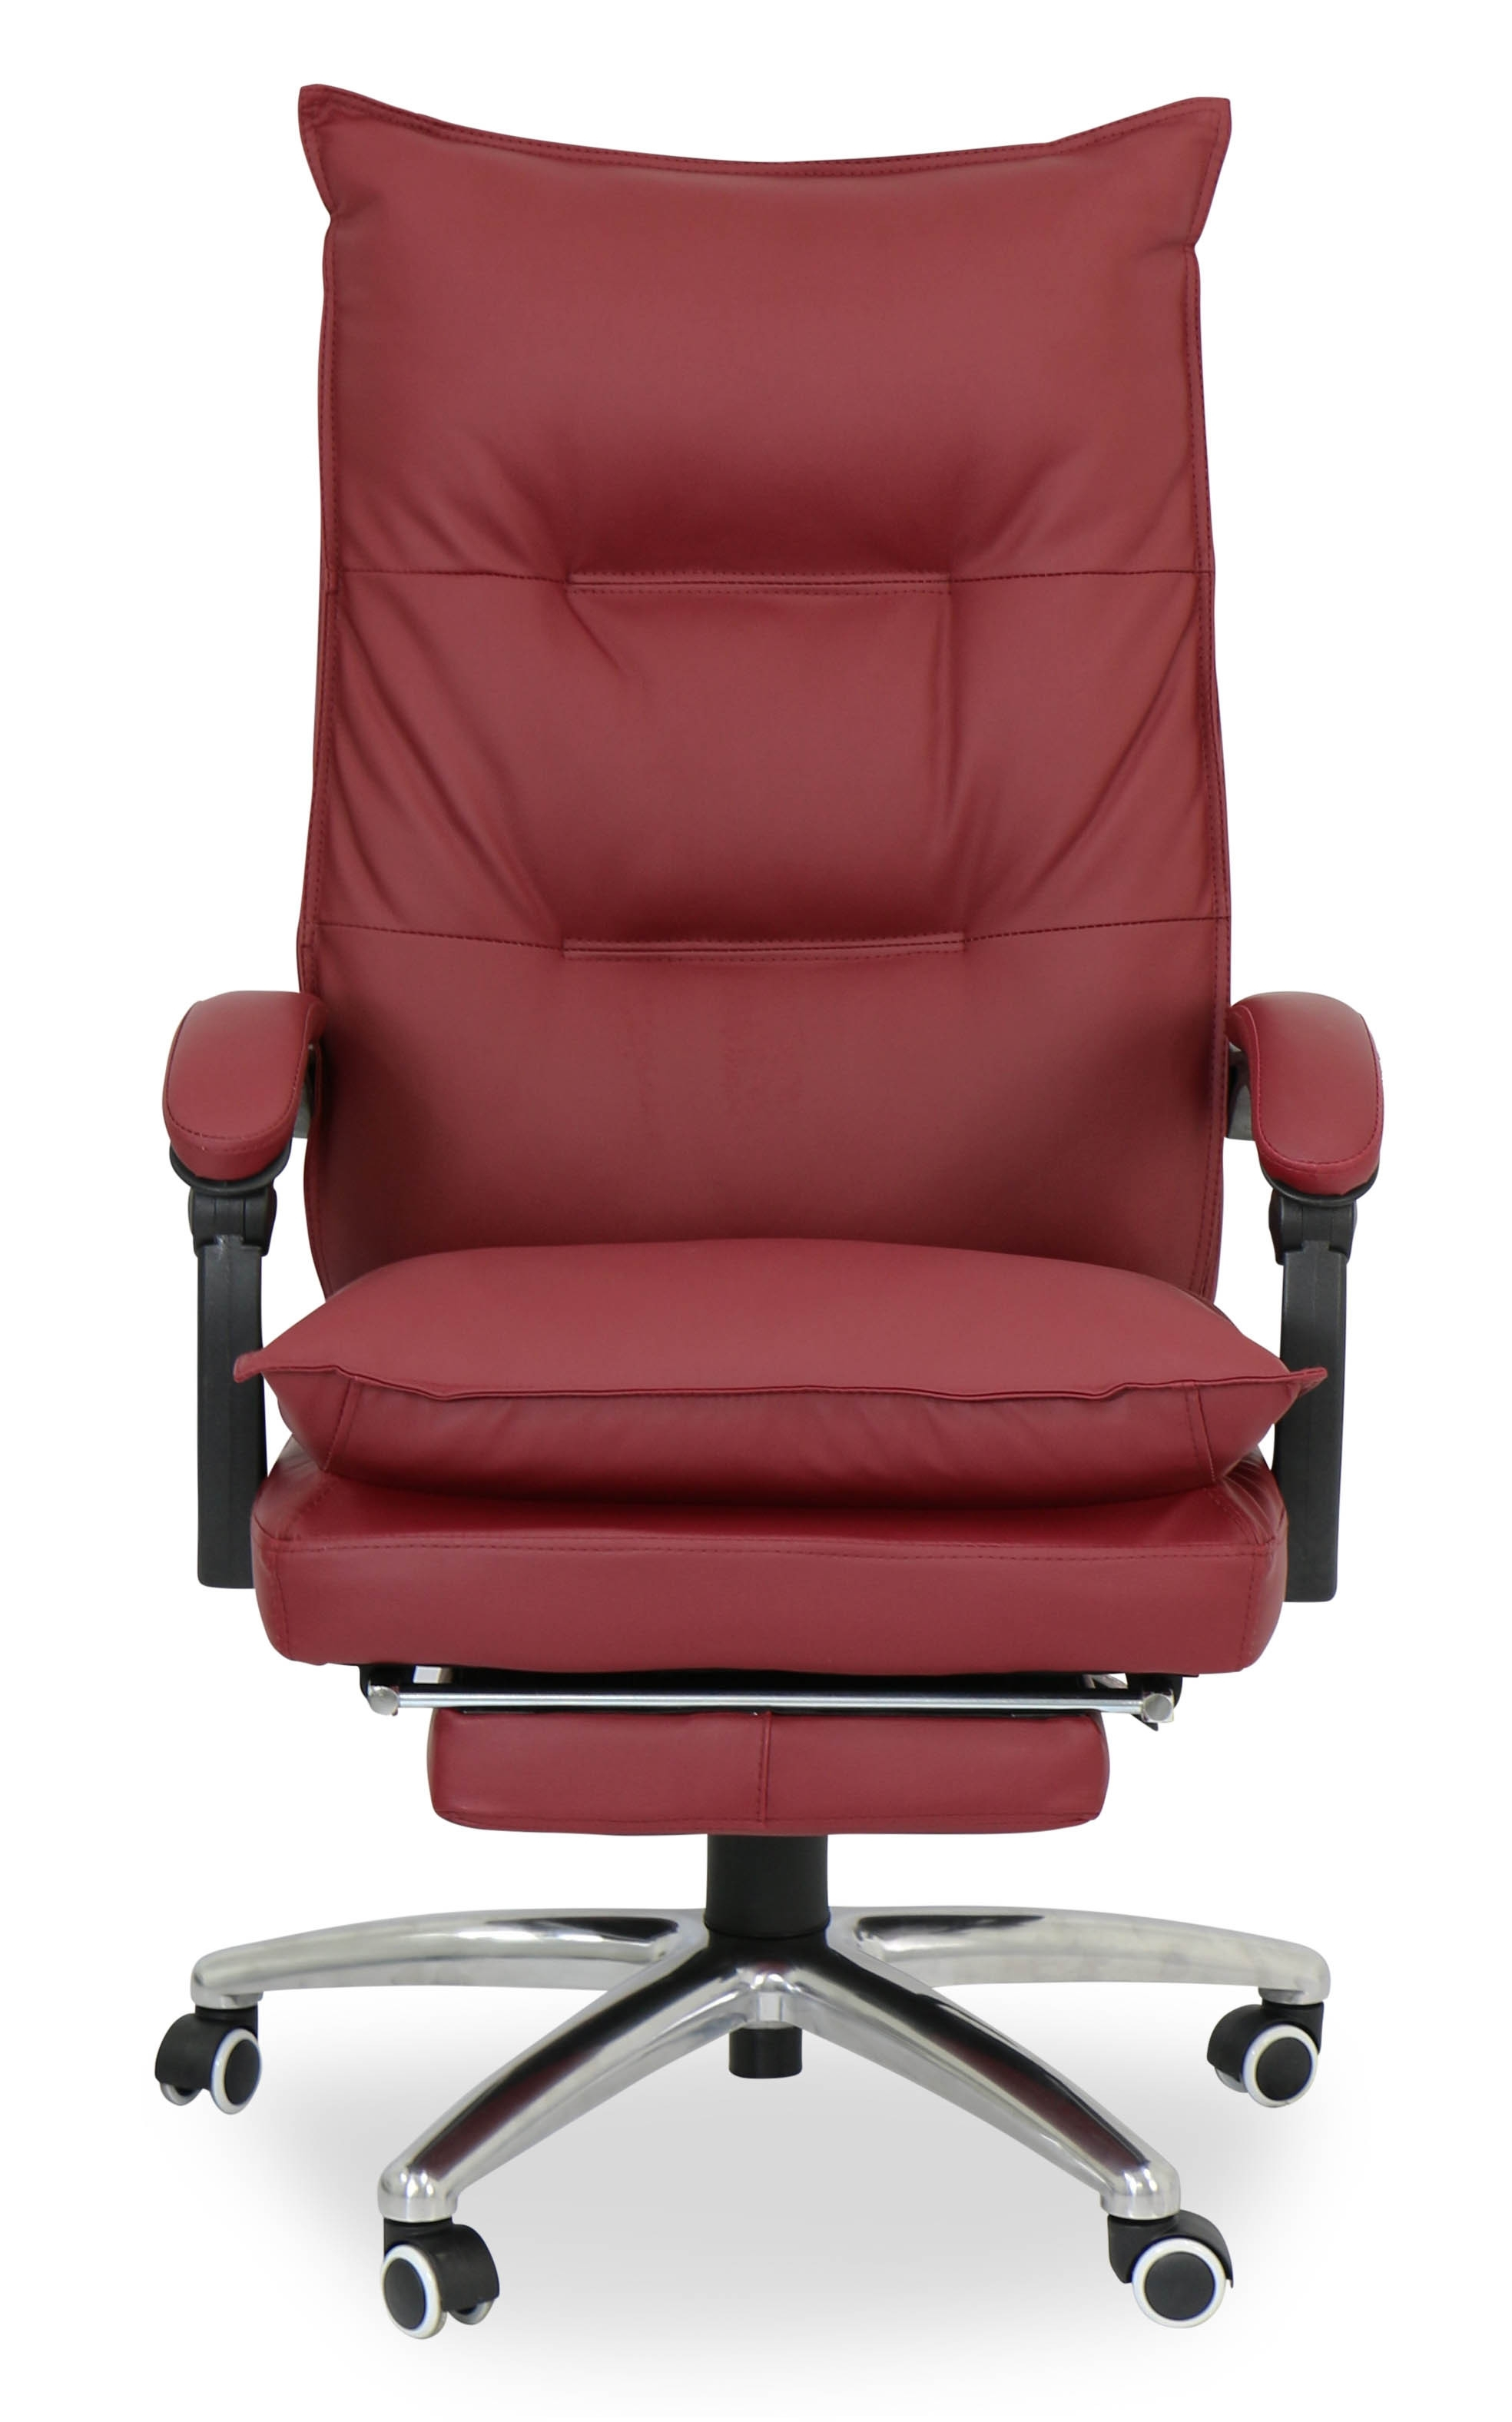 View Photos Of Executive Office Chairs Without Wheels Showing 17 Of 20 Photos